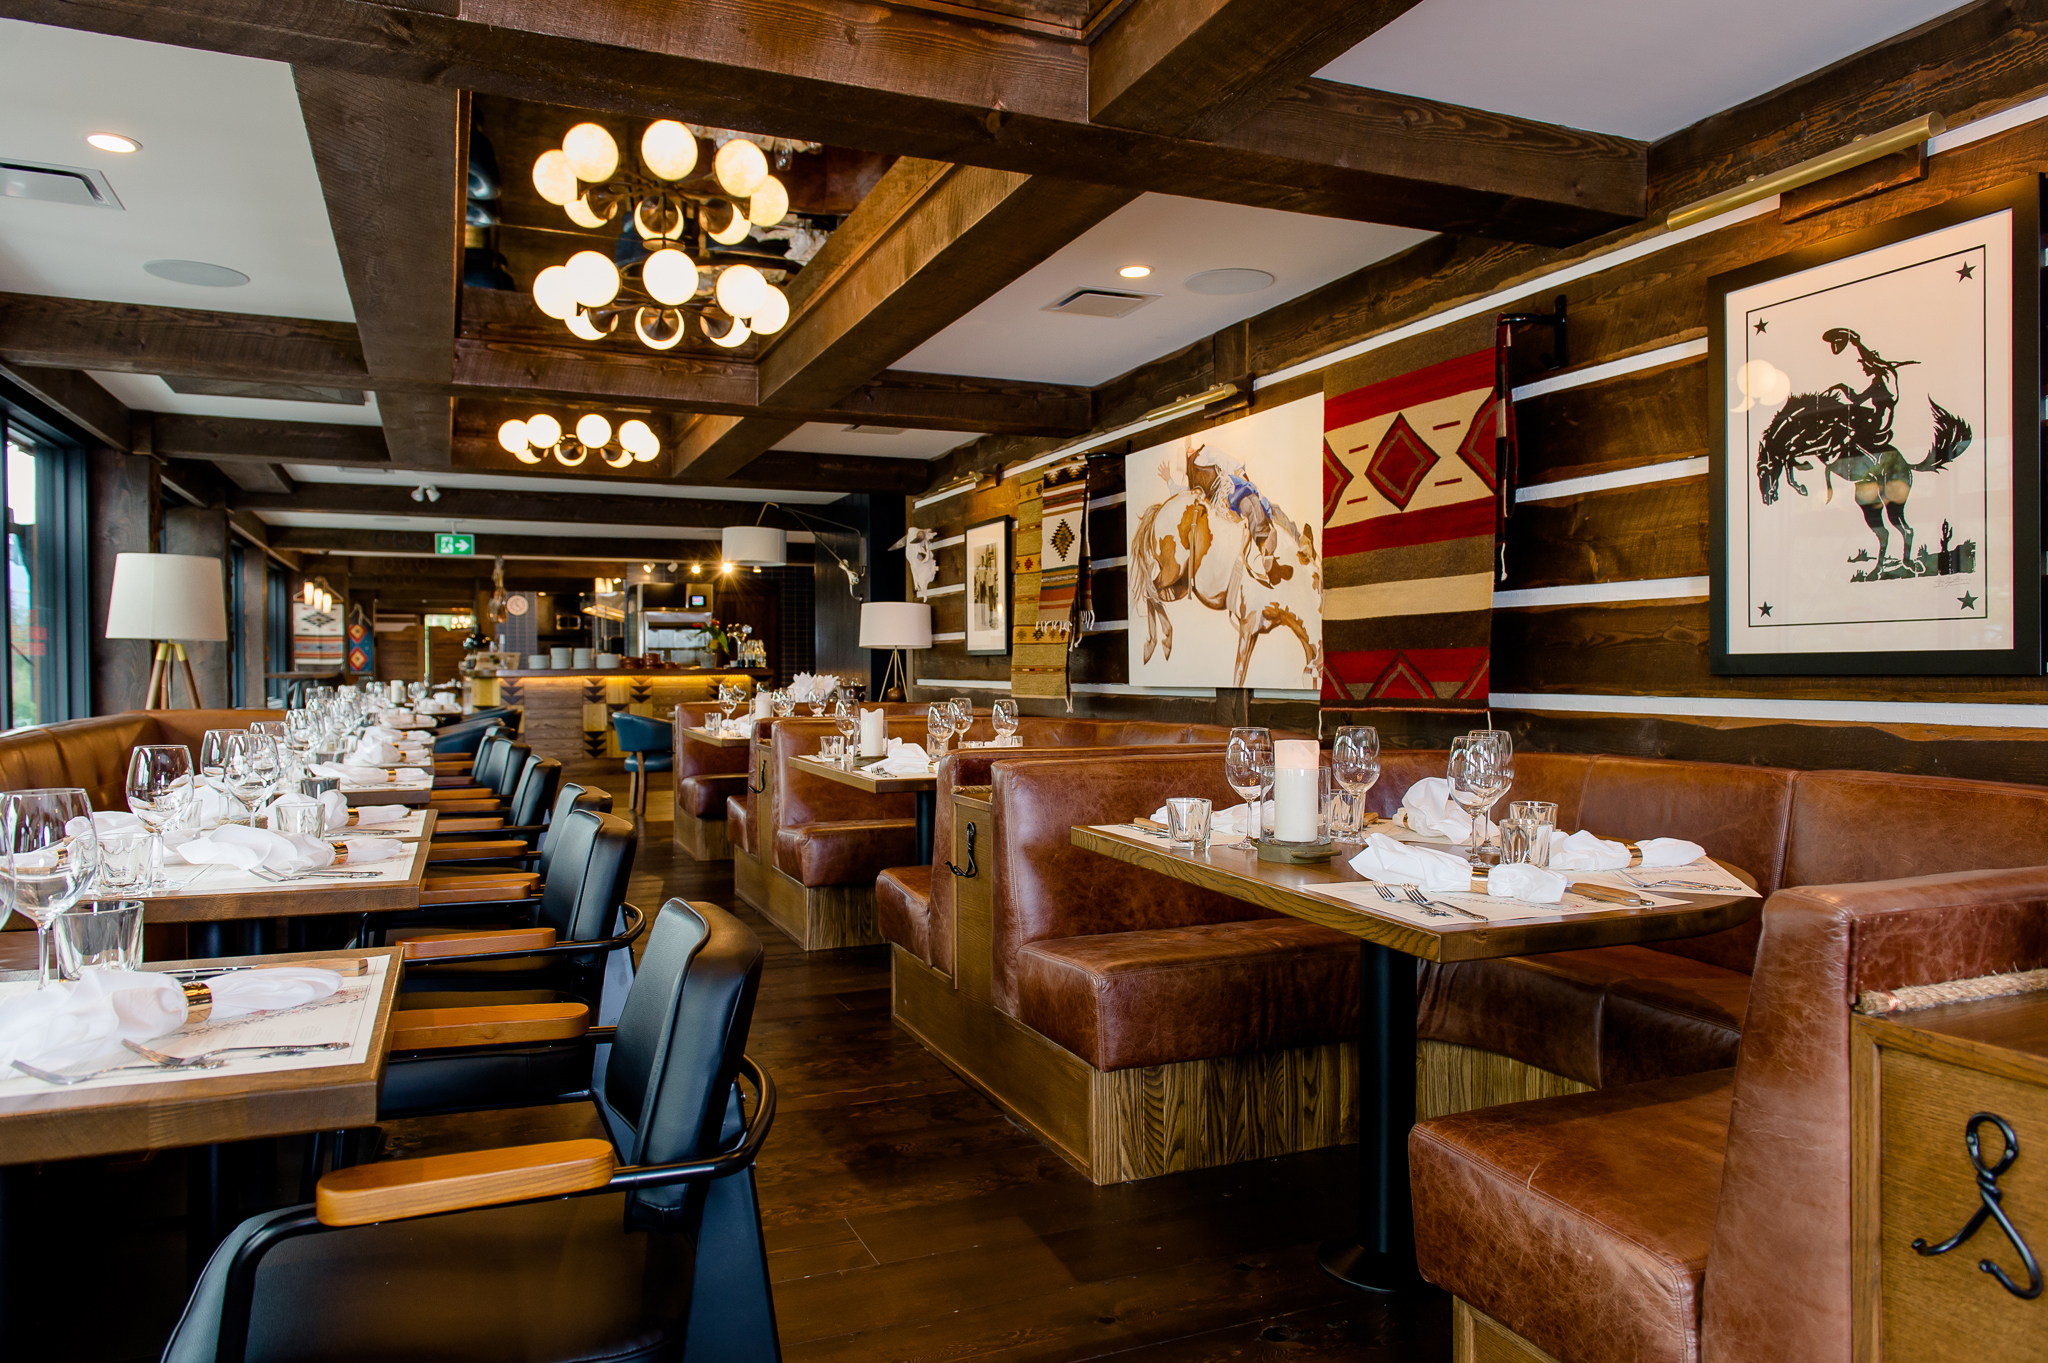 Saloon - 30 PEOPLEOur stylish ranch inspired saloon (main dining room) can seat up to 30 guests at a combination of booths and window front tables